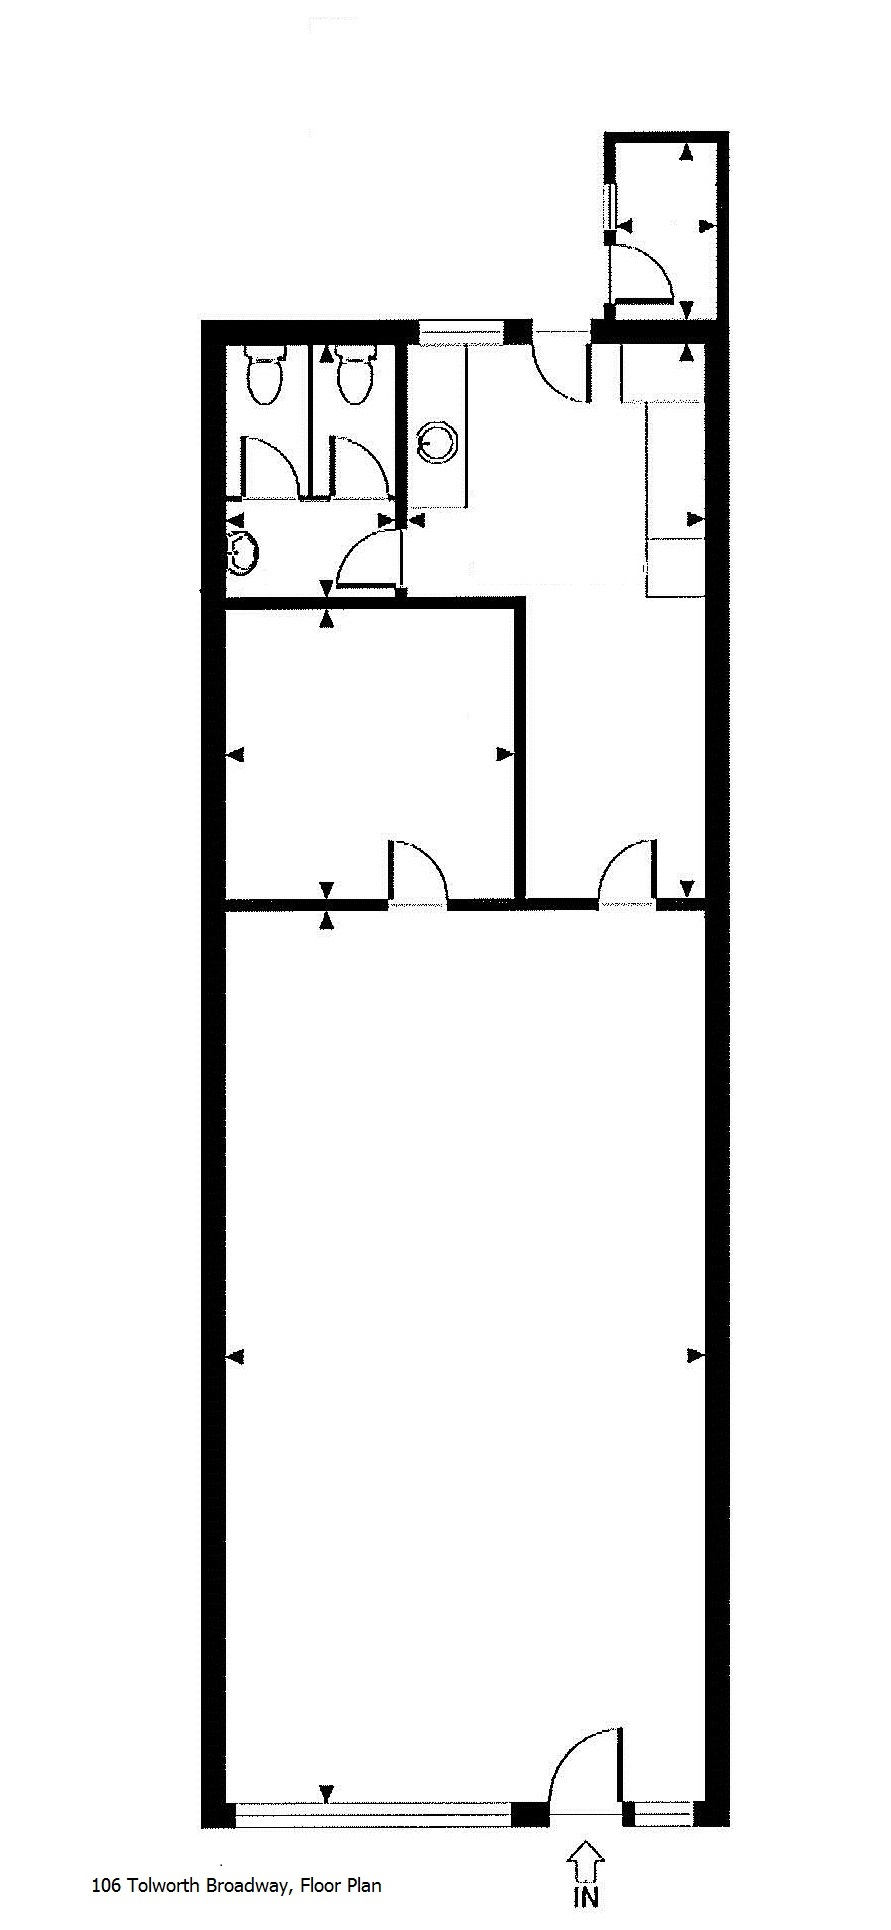 106 tolworth broadway kt6 7ht cattaneo commercial for Broadway plan